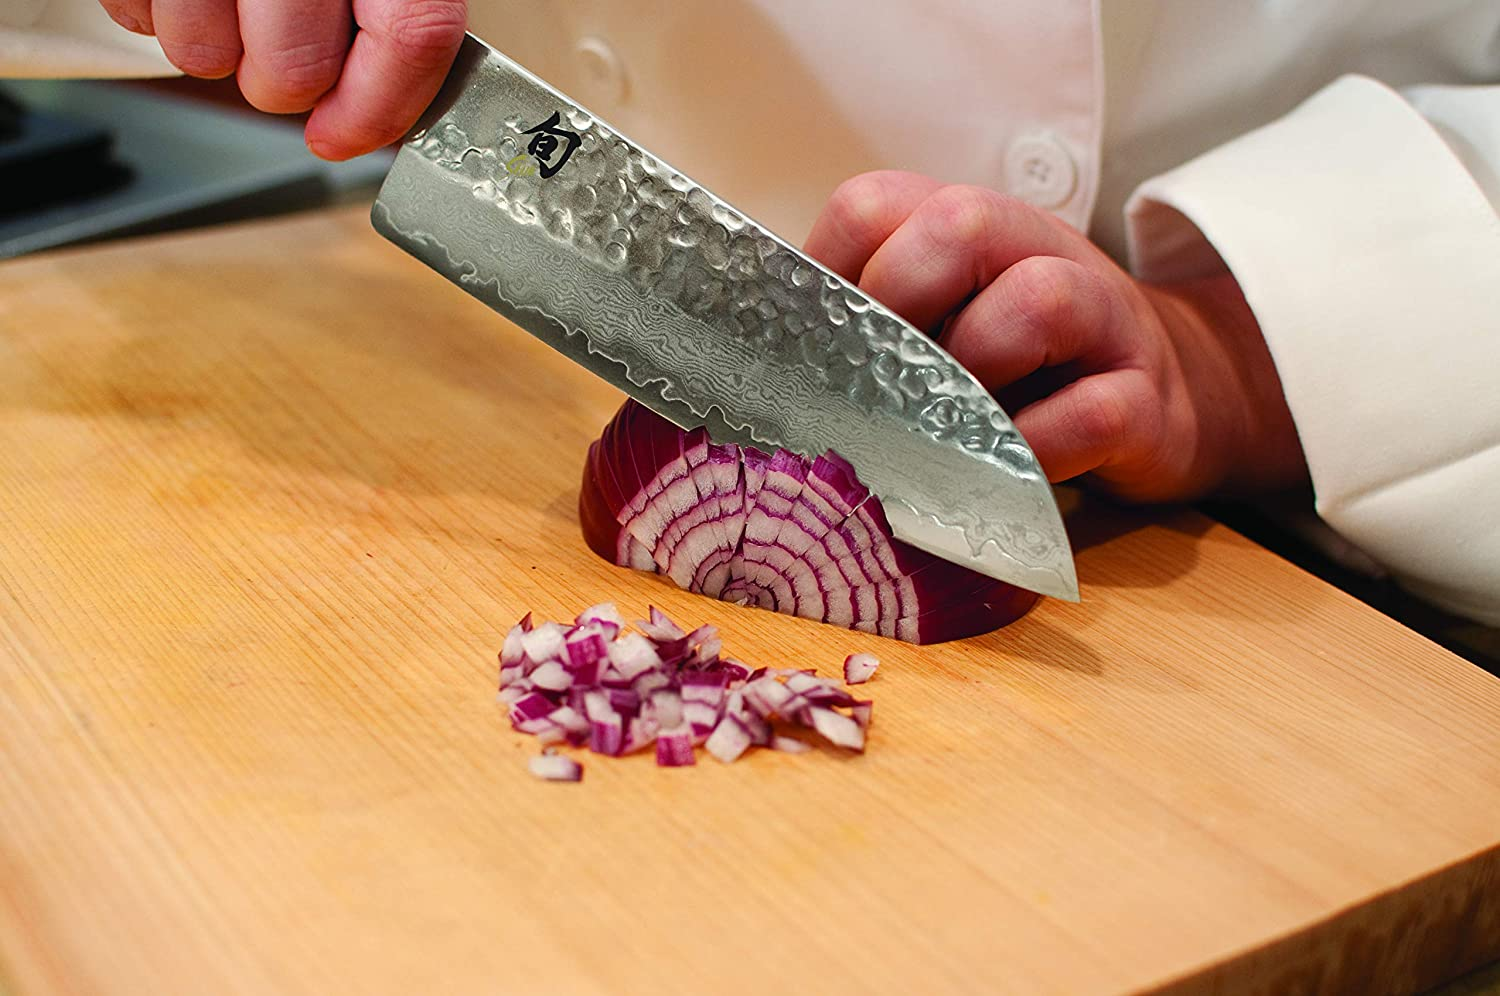 """Shun Cutlery Premier 7"""" Santoku Knife; Easily Handles All Basic Kitchen Cutting Tasks, Light, Agile and Very Easy to Maneuver, Fits in Hand Like a ..."""